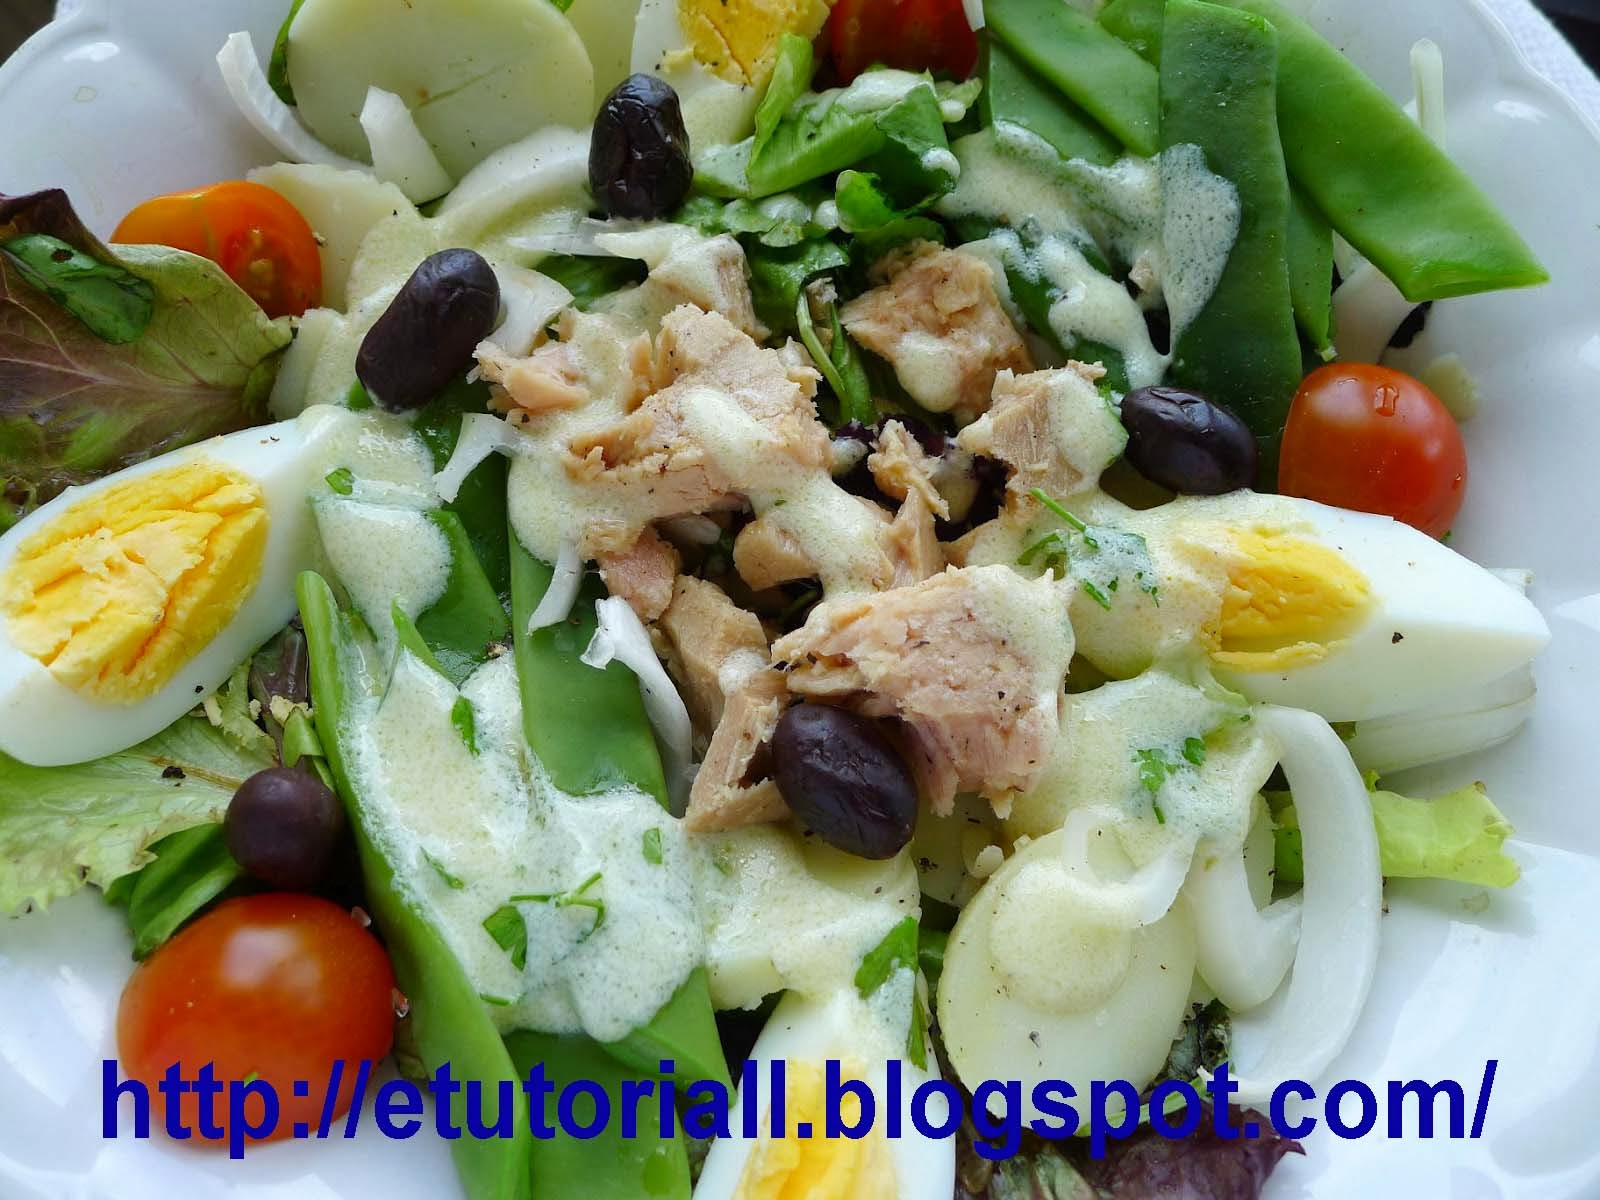 Resep Garden Salad With Vinegarette Dressing